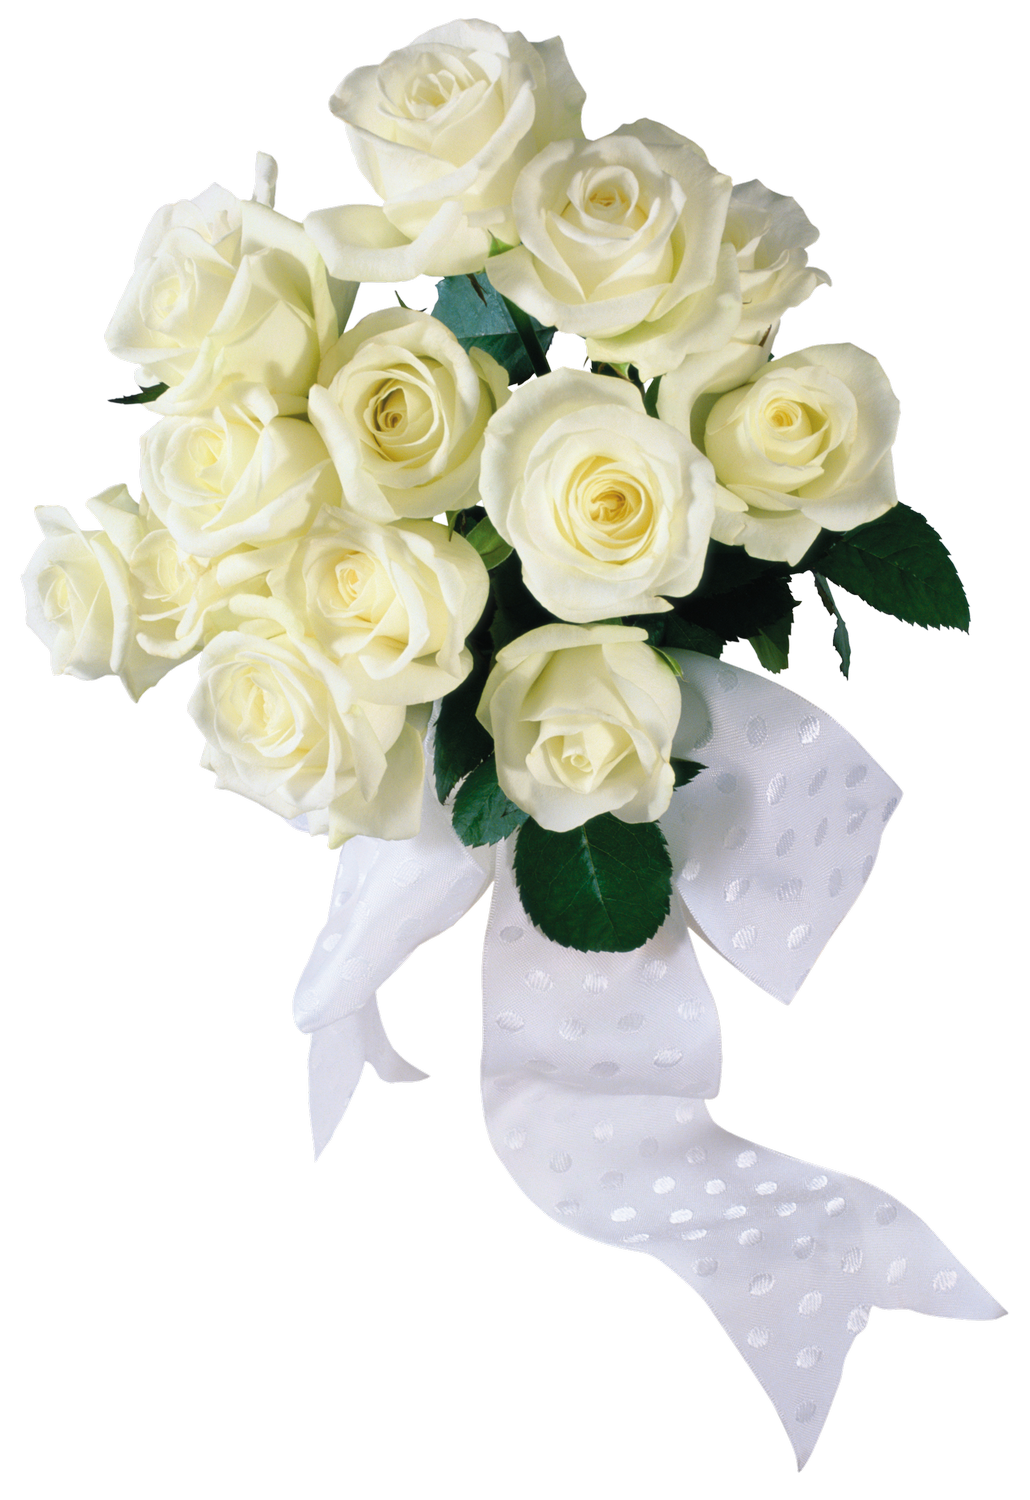 Pin by next on nature pinterest flowers wedding and white roses